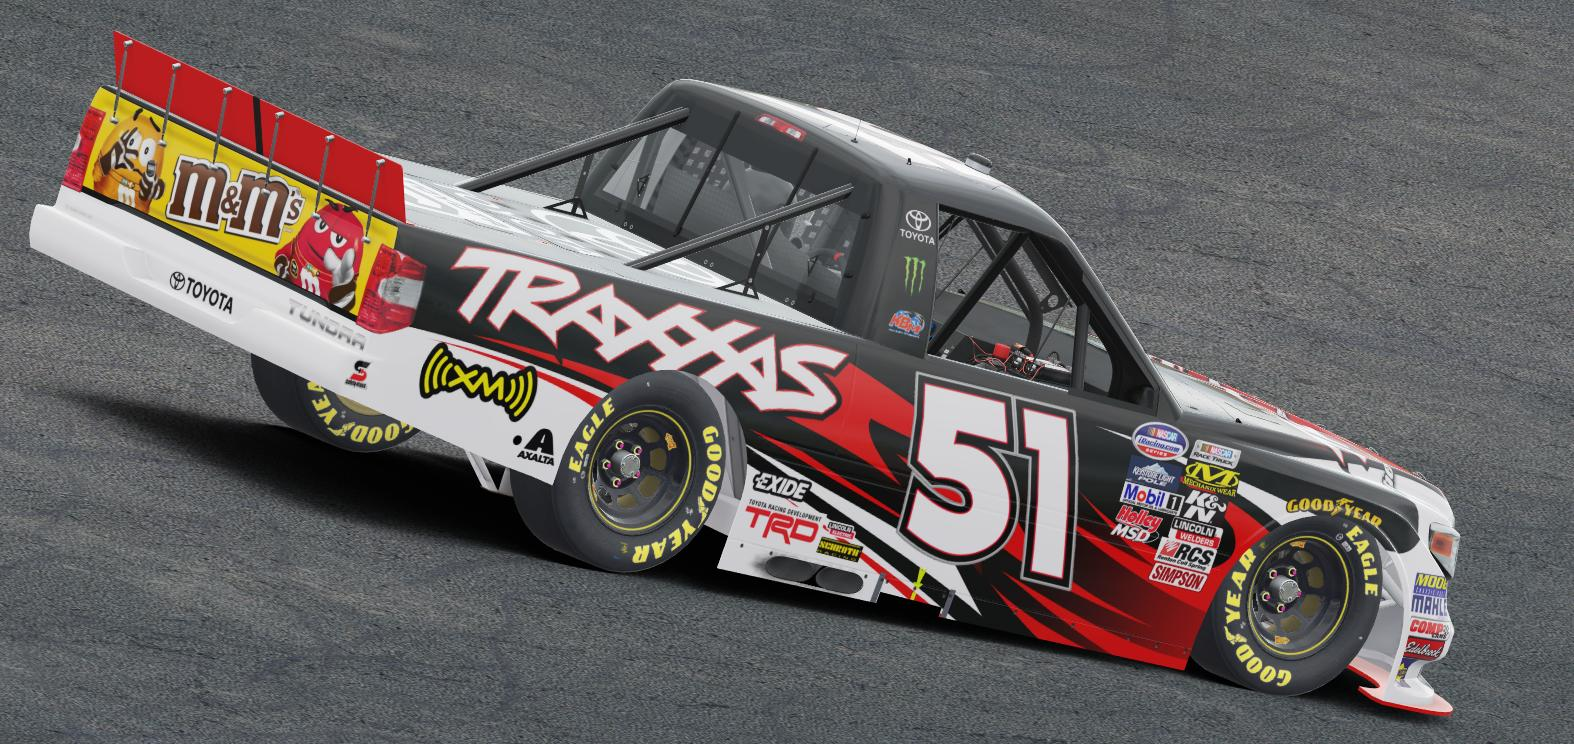 Preview of Kyle Busch Traxxas Tundra (OUTDATED) by Preston Pardus